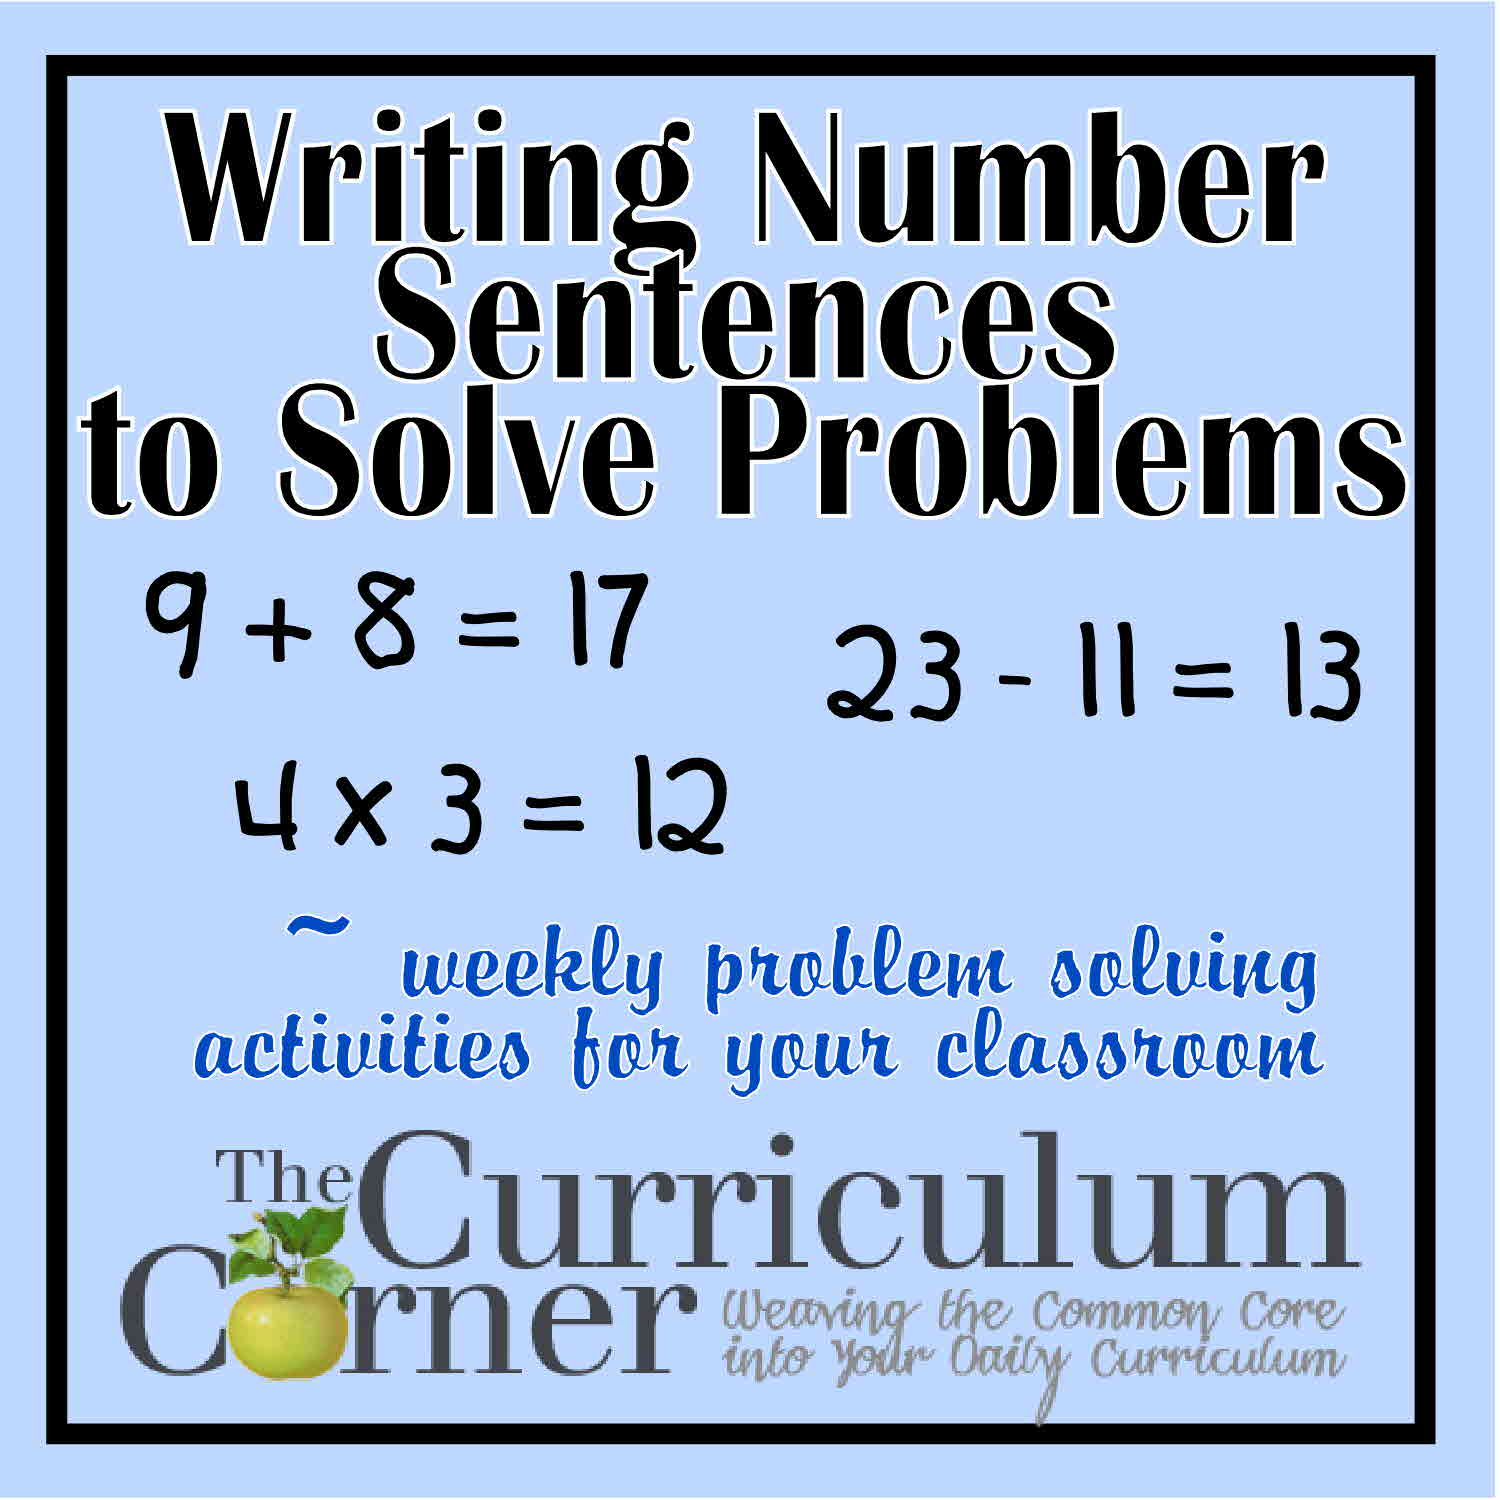 Worksheets Number Sentence Worksheets 2nd Grade writing number sentences to solve problems the curriculum corner 123 help students by a sentence these are designed be used with first second or th